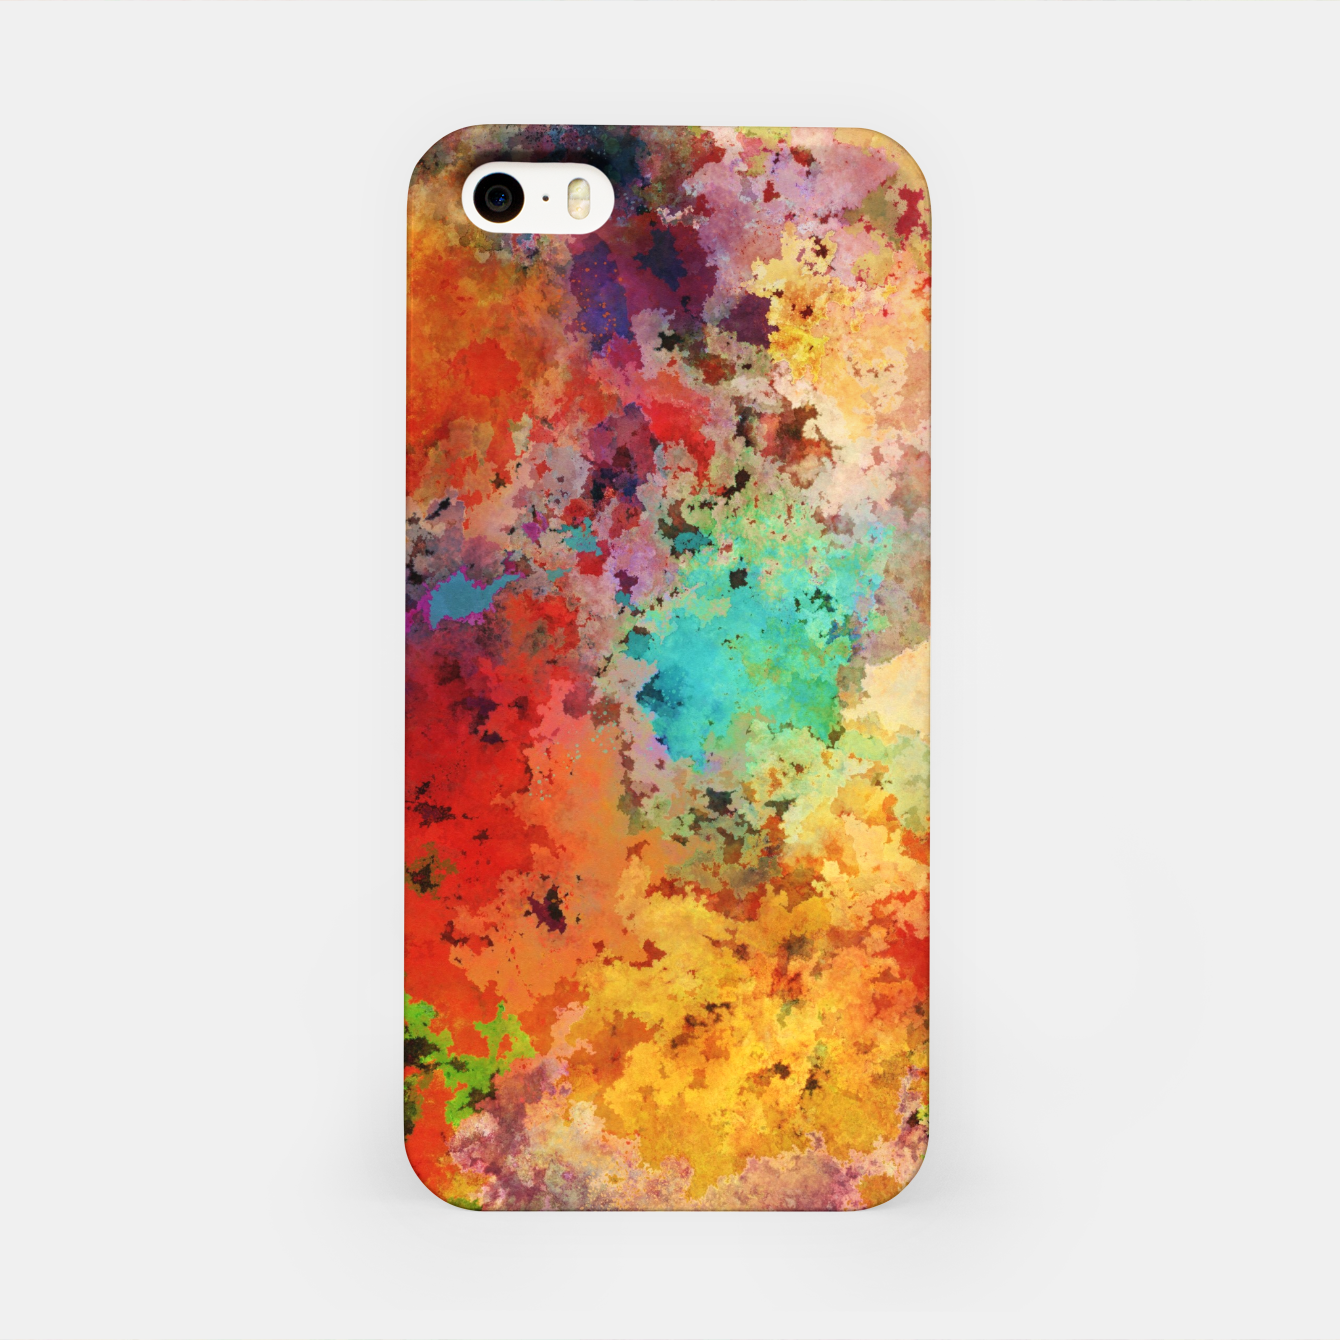 Image of Blame iPhone Case - Live Heroes